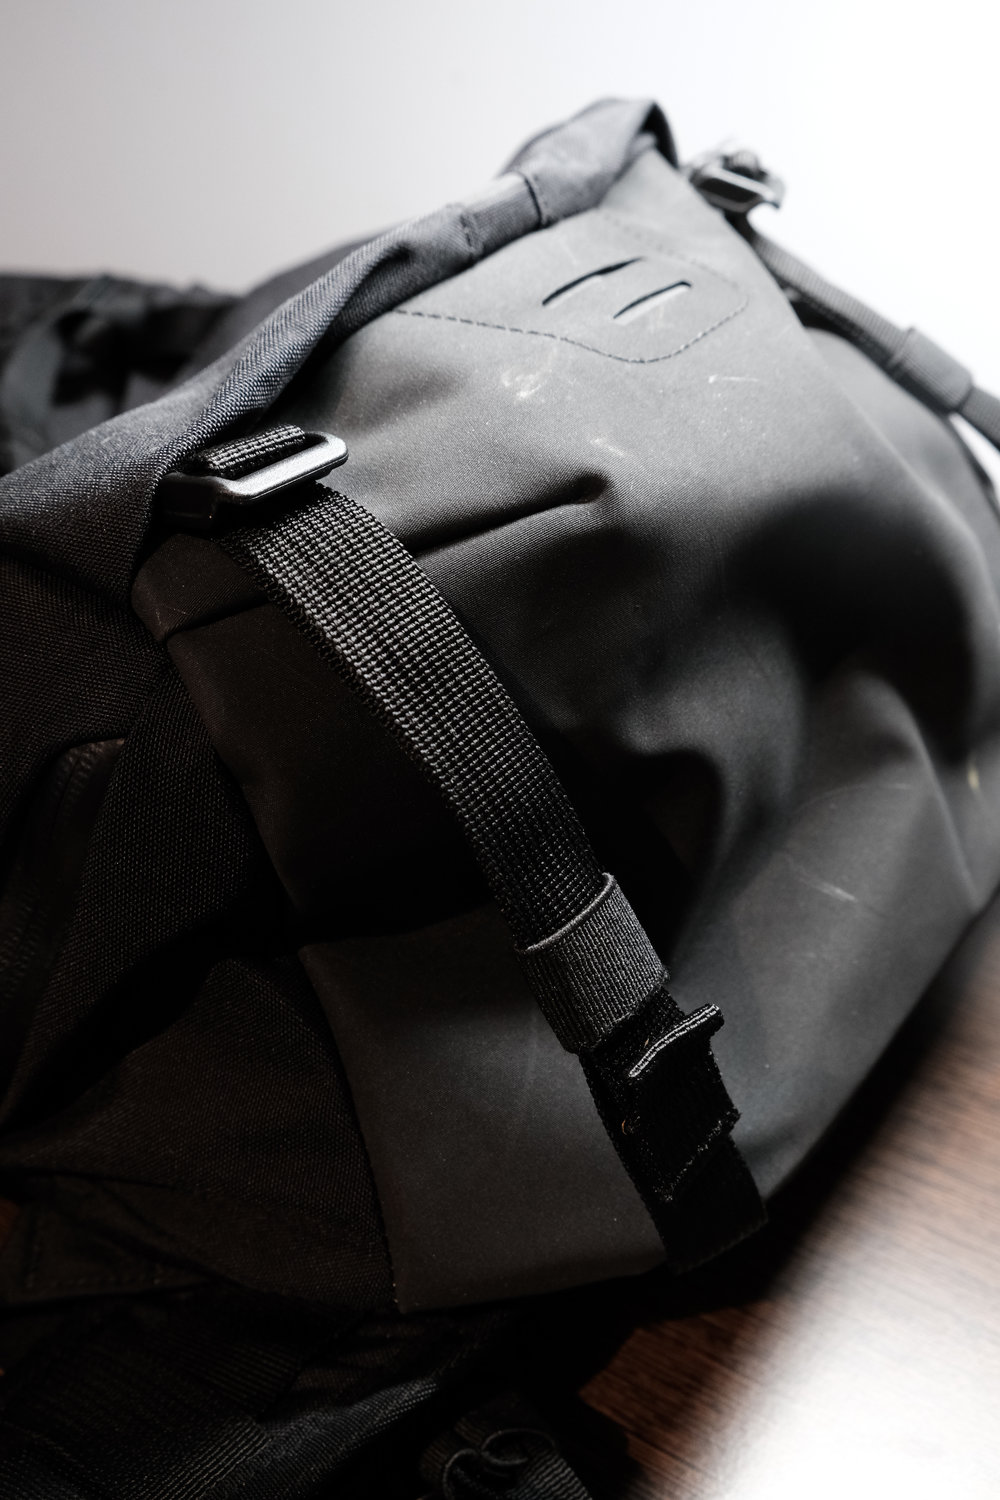 fb3a166f29 The materials of the bag feel amazing. Everything from the 420 Hypalon  bottom and details to the 500D nylon kodra shell. This bag feels like it  can ...